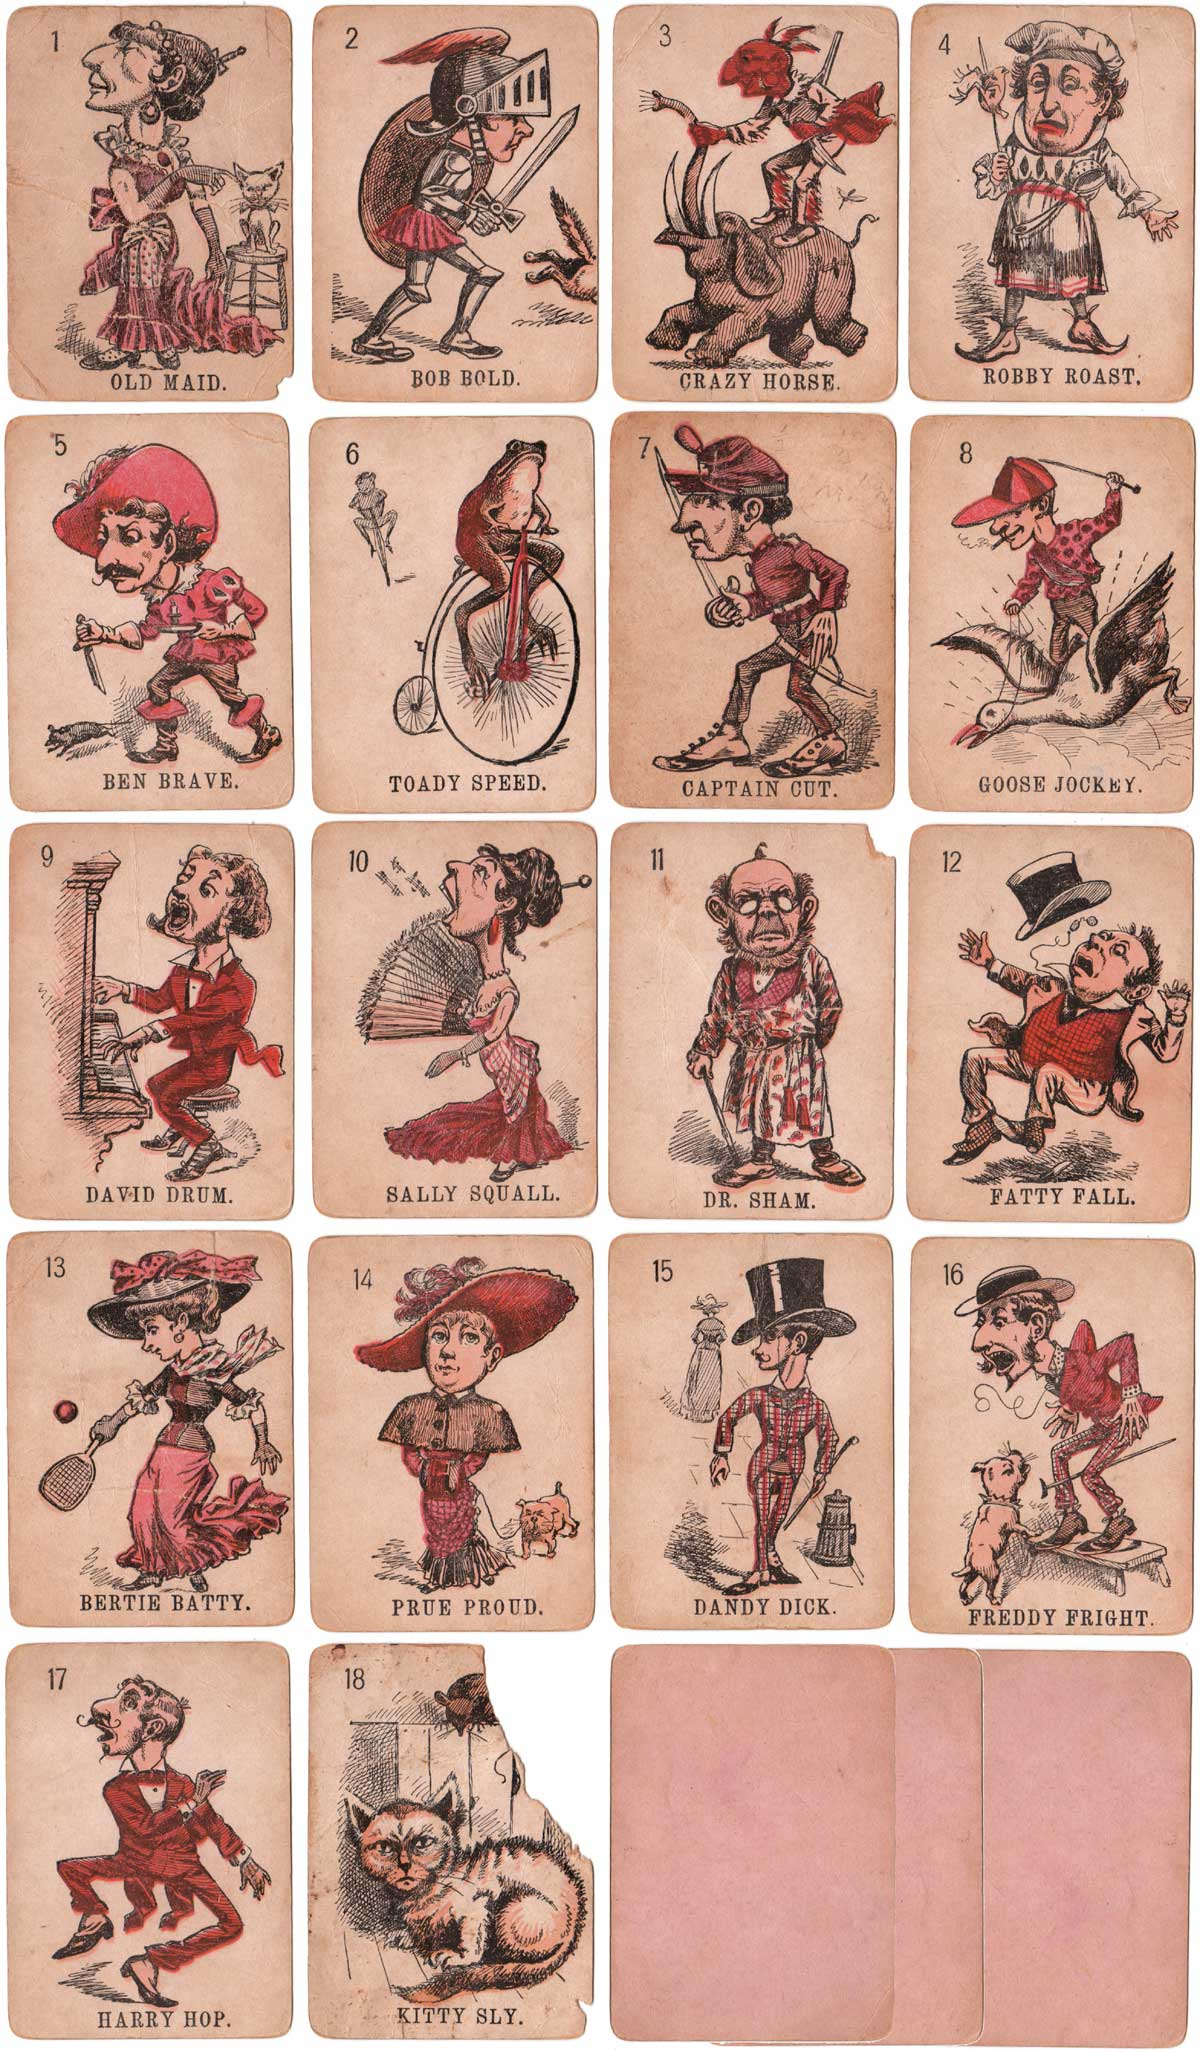 The Merry Game of Old Maid published by McLoughlin Brothers, c.1880s